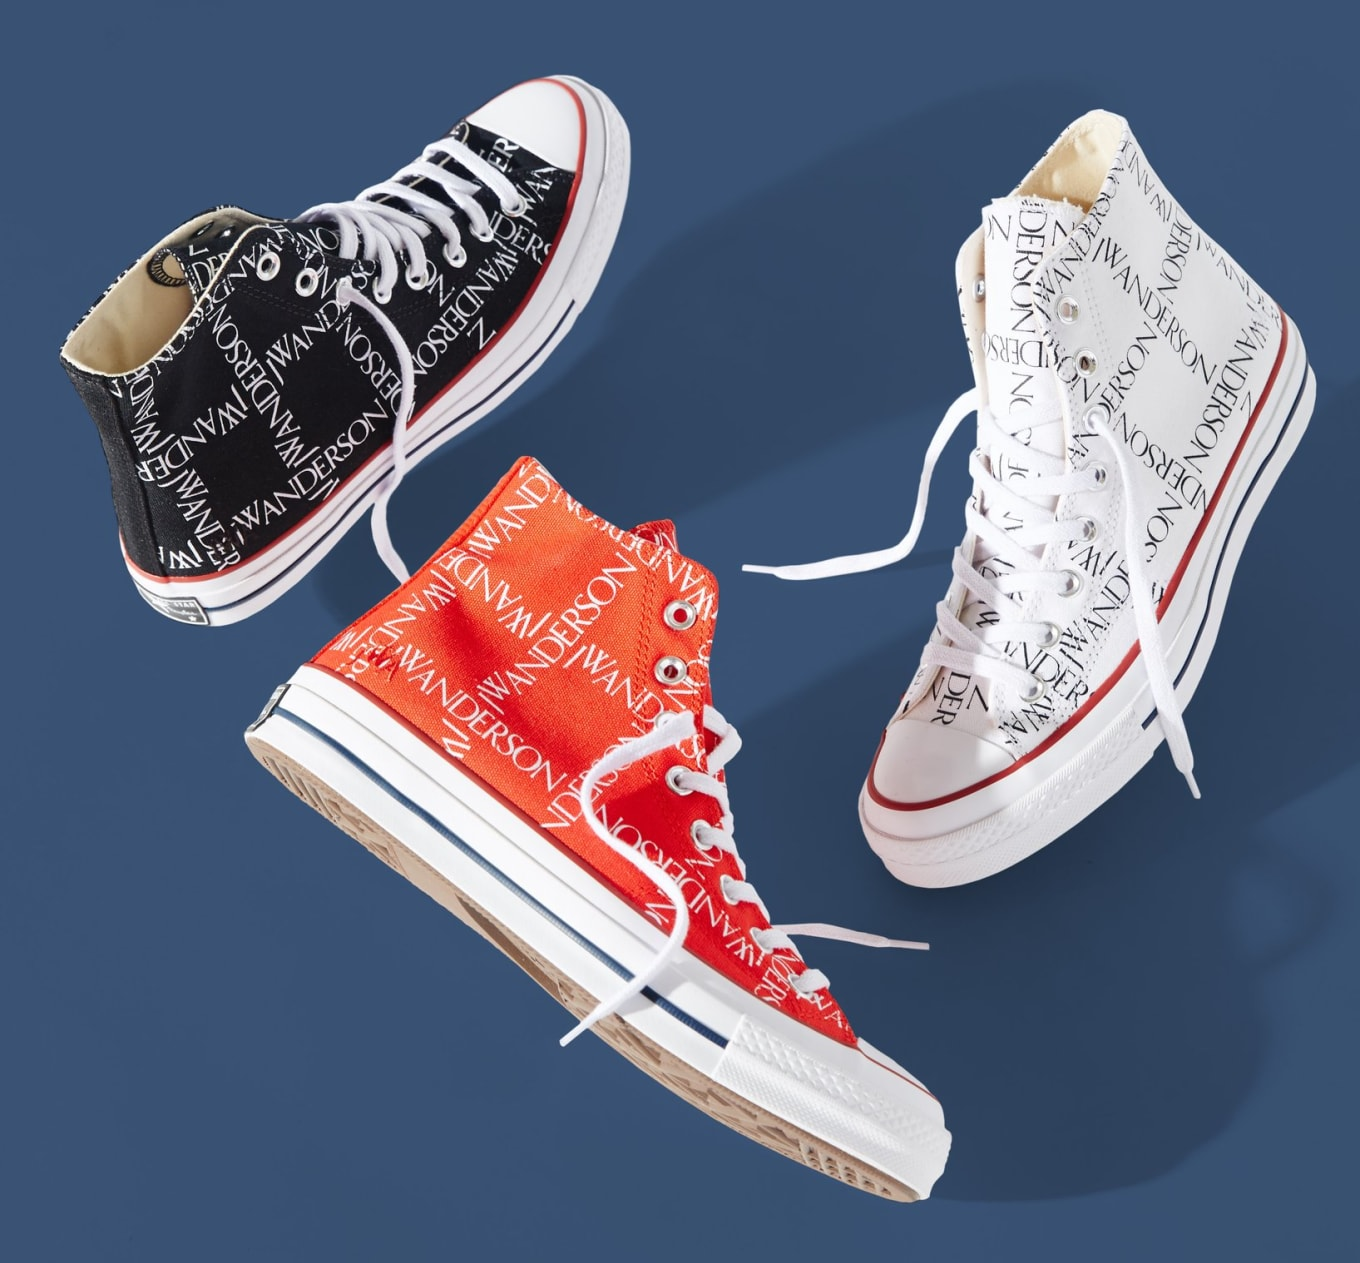 0c8cdcc1cc84 JW Anderson x Converse Chuck Taylor All Star Drop 3 Available Thursday